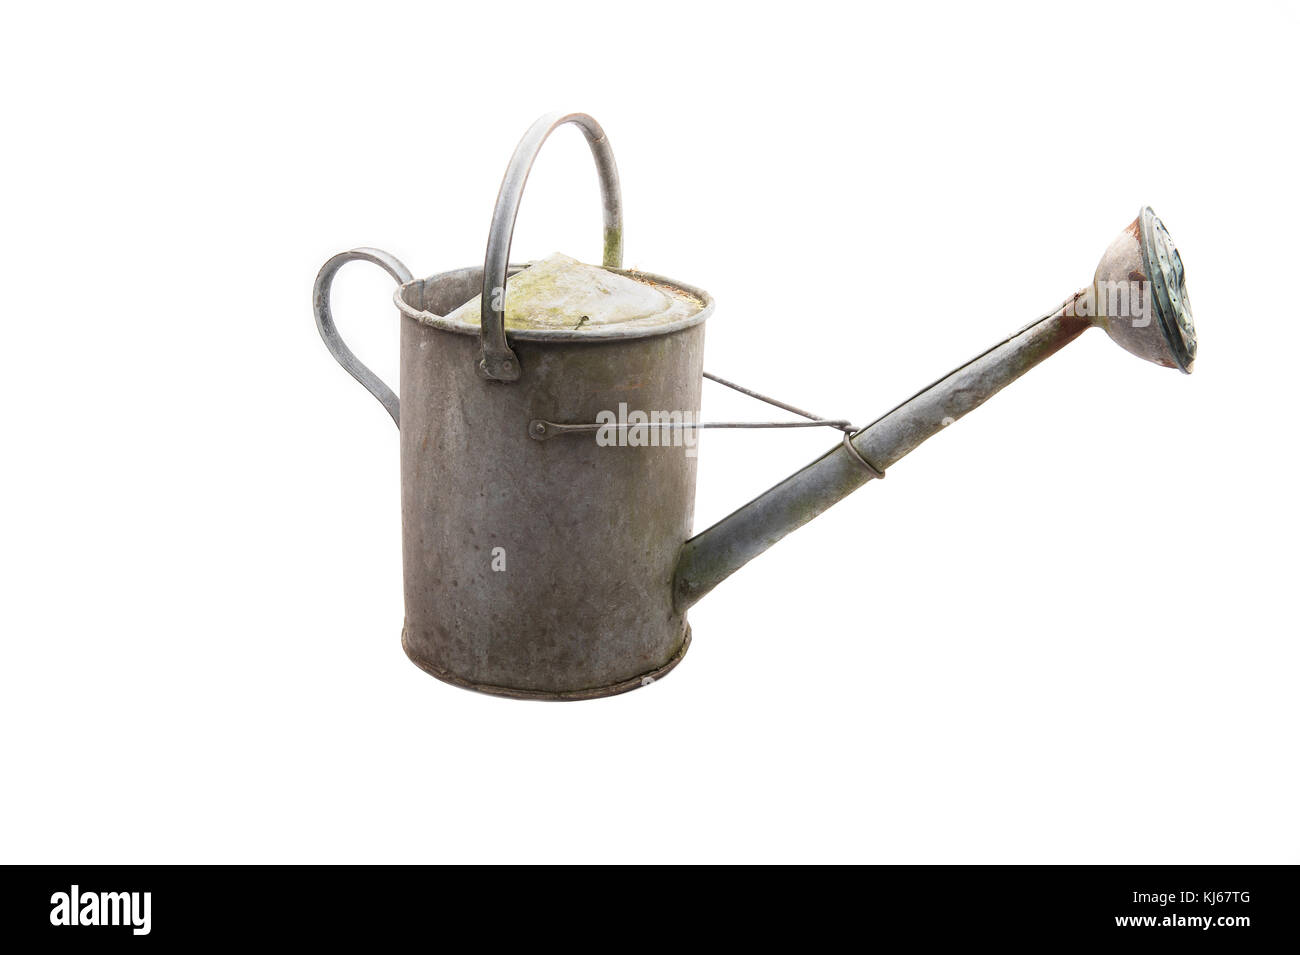 An old galvanized zinc watering can with rust isolated on white - Stock Image